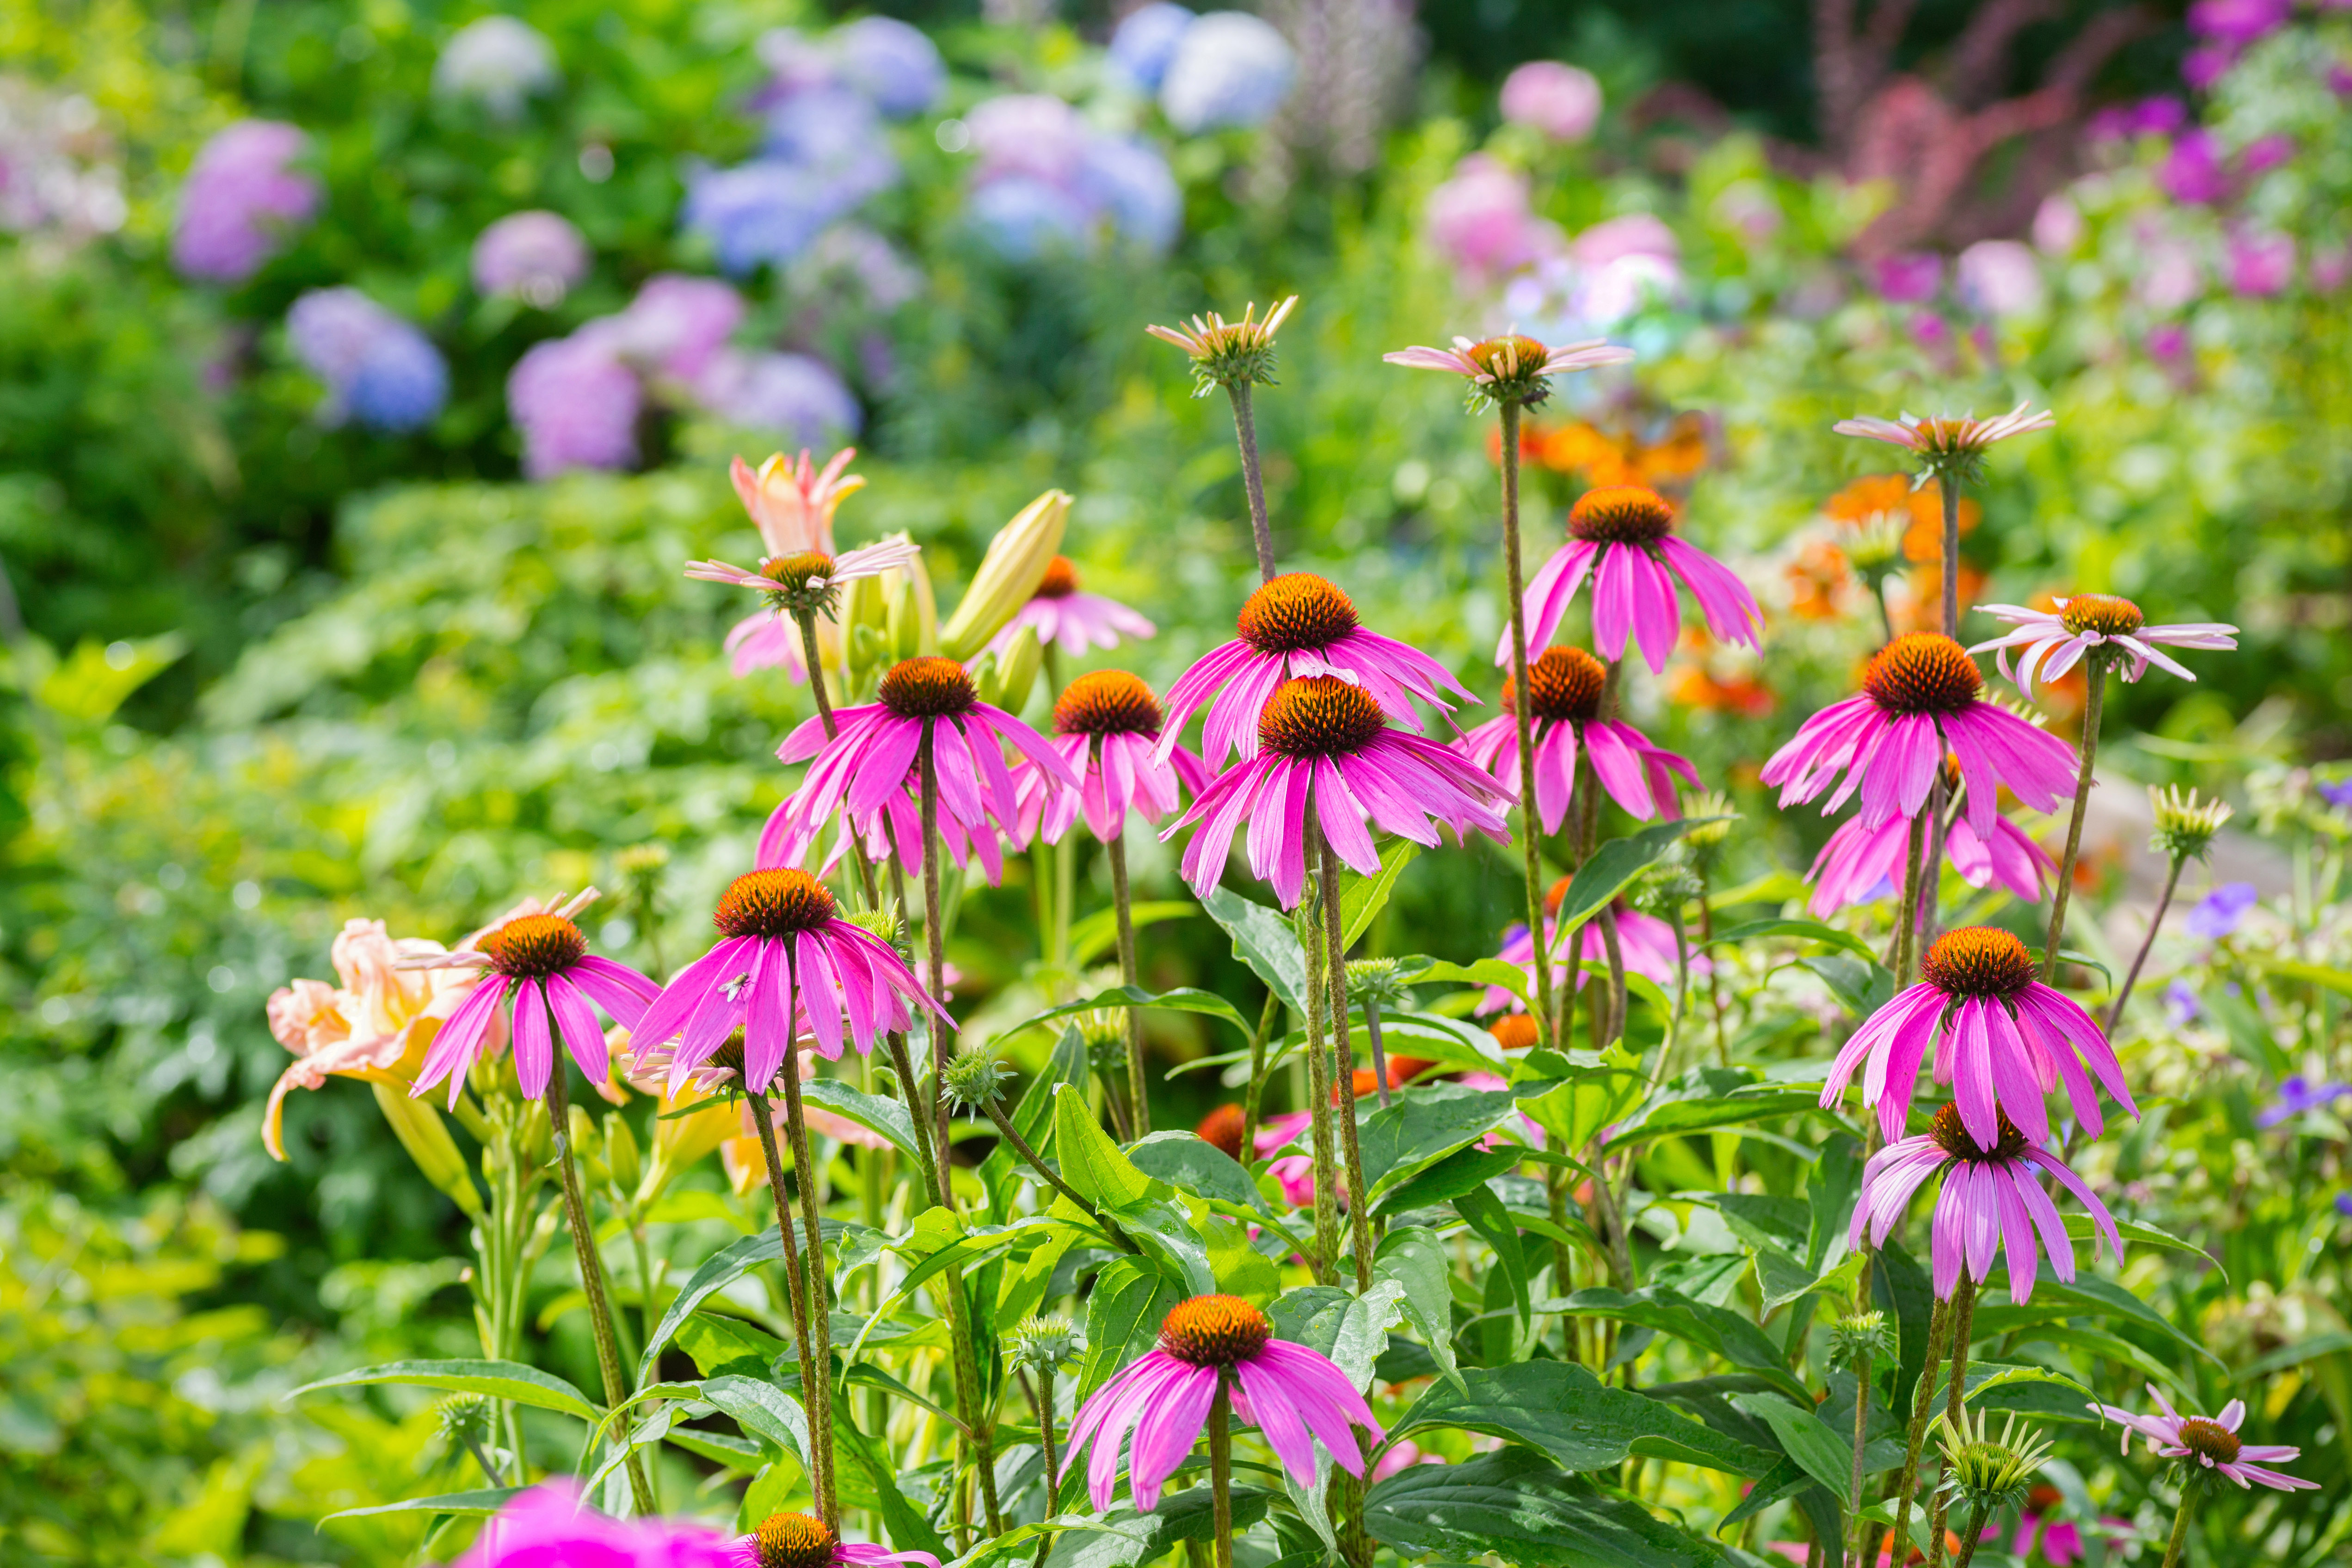 Easiest perennials to grow how to have an easy garden for Easiest outdoor plants